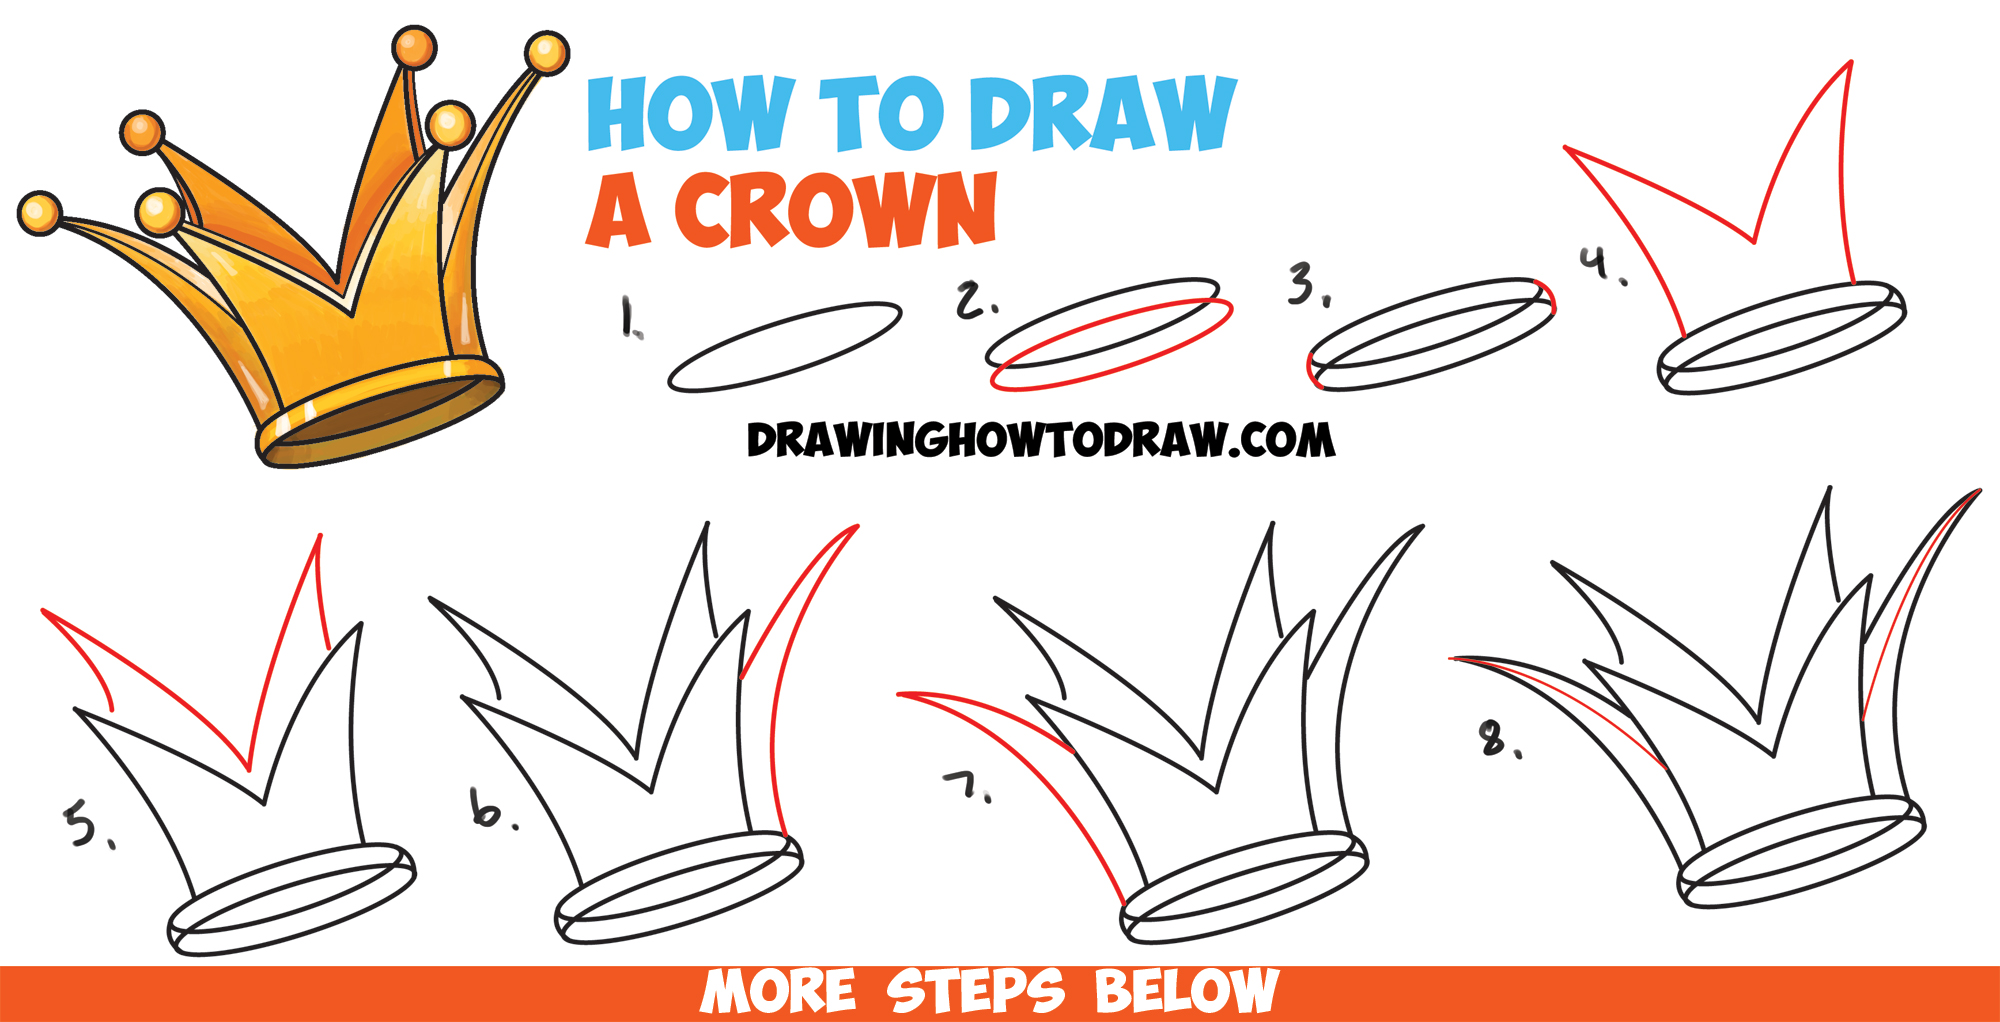 How To Draw A Crown Drawing Cartoon Crowns Easy Step By Step Drawing Tutorial For Kids How To Draw Step By Step Drawing Tutorials Learn how to draw simple king crown pictures using these outlines or print just for coloring. how to draw a crown drawing cartoon